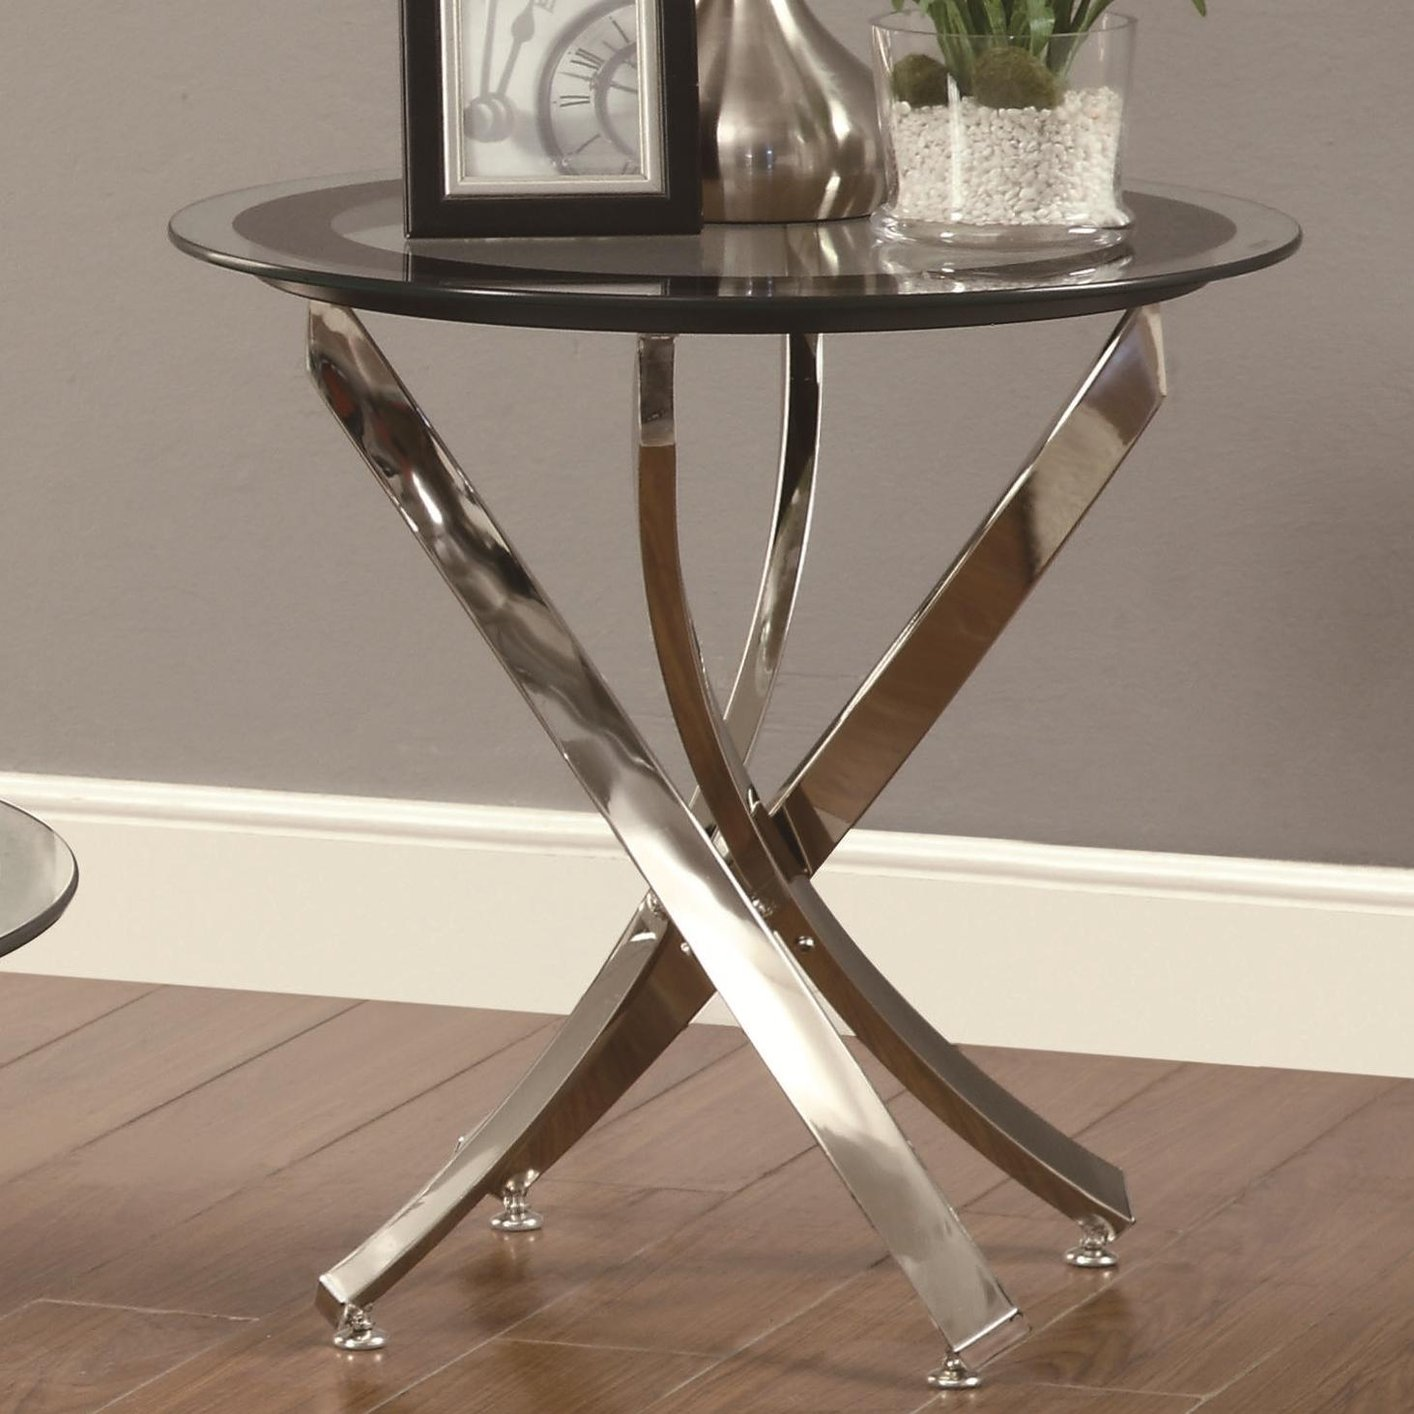 Coaster 702587 Silver Glass End Table Steal A Sofa  : silver glass end table 139 from www.stealasofa.com size 1414 x 1414 jpeg 195kB